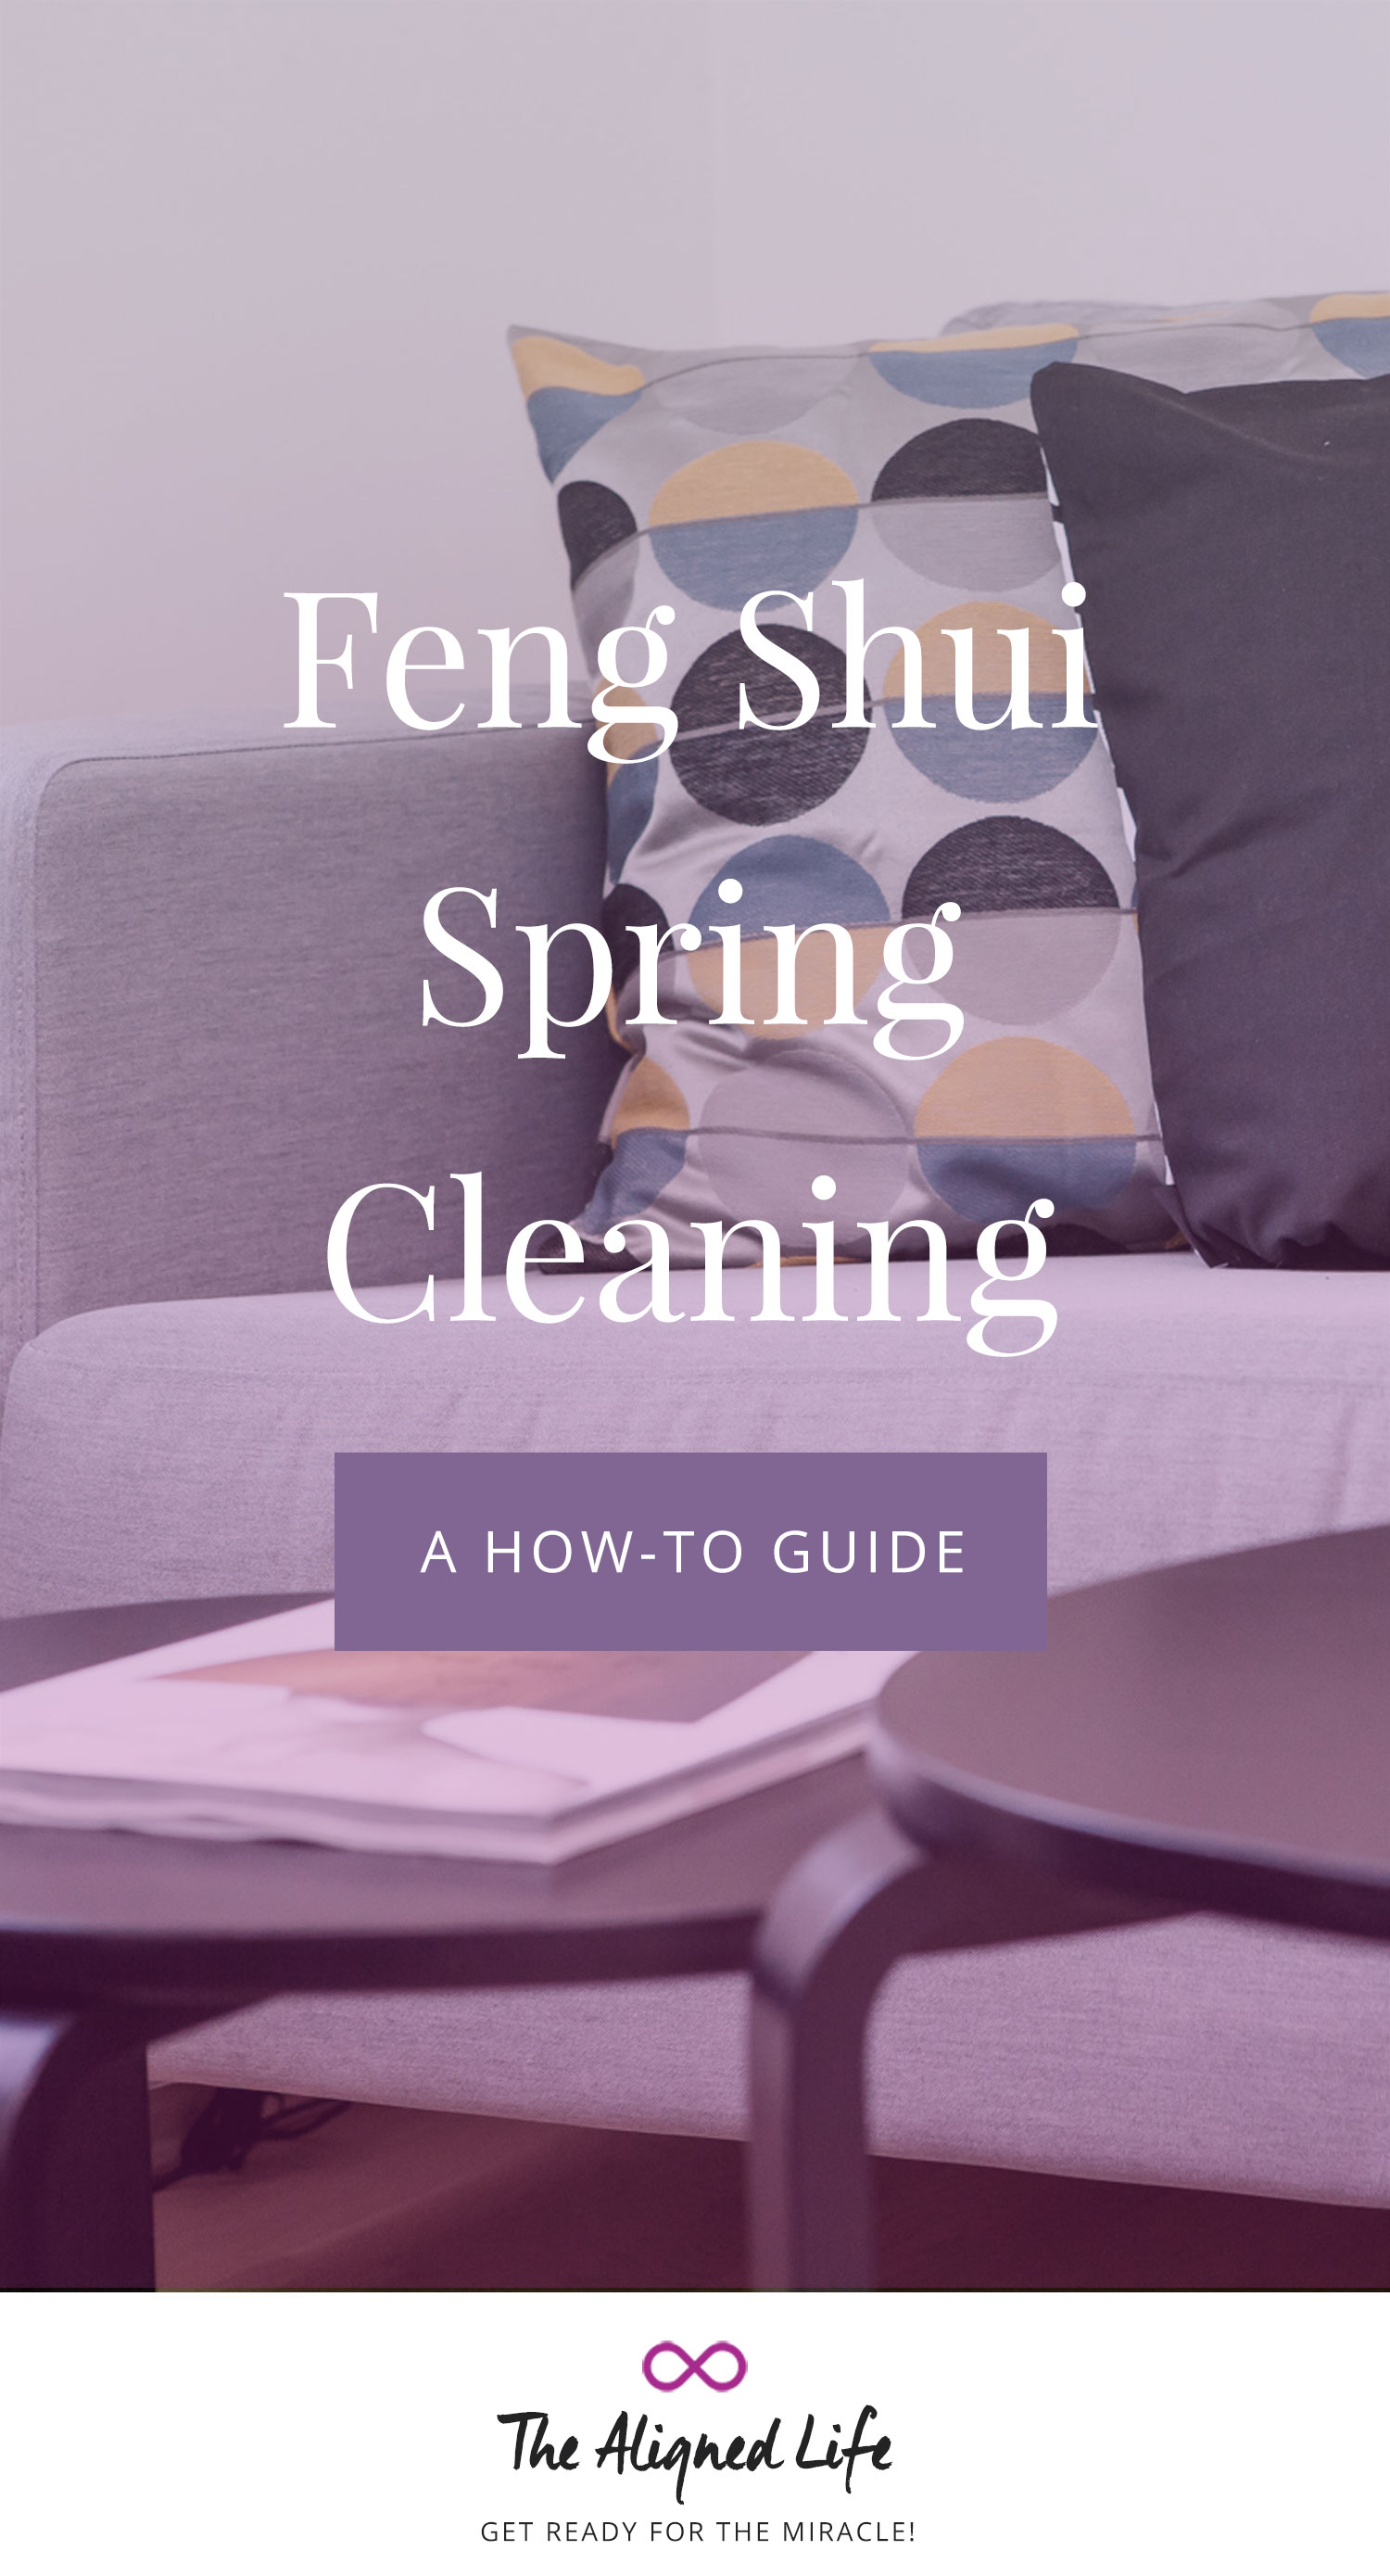 Feng Shui Spring Cleaning